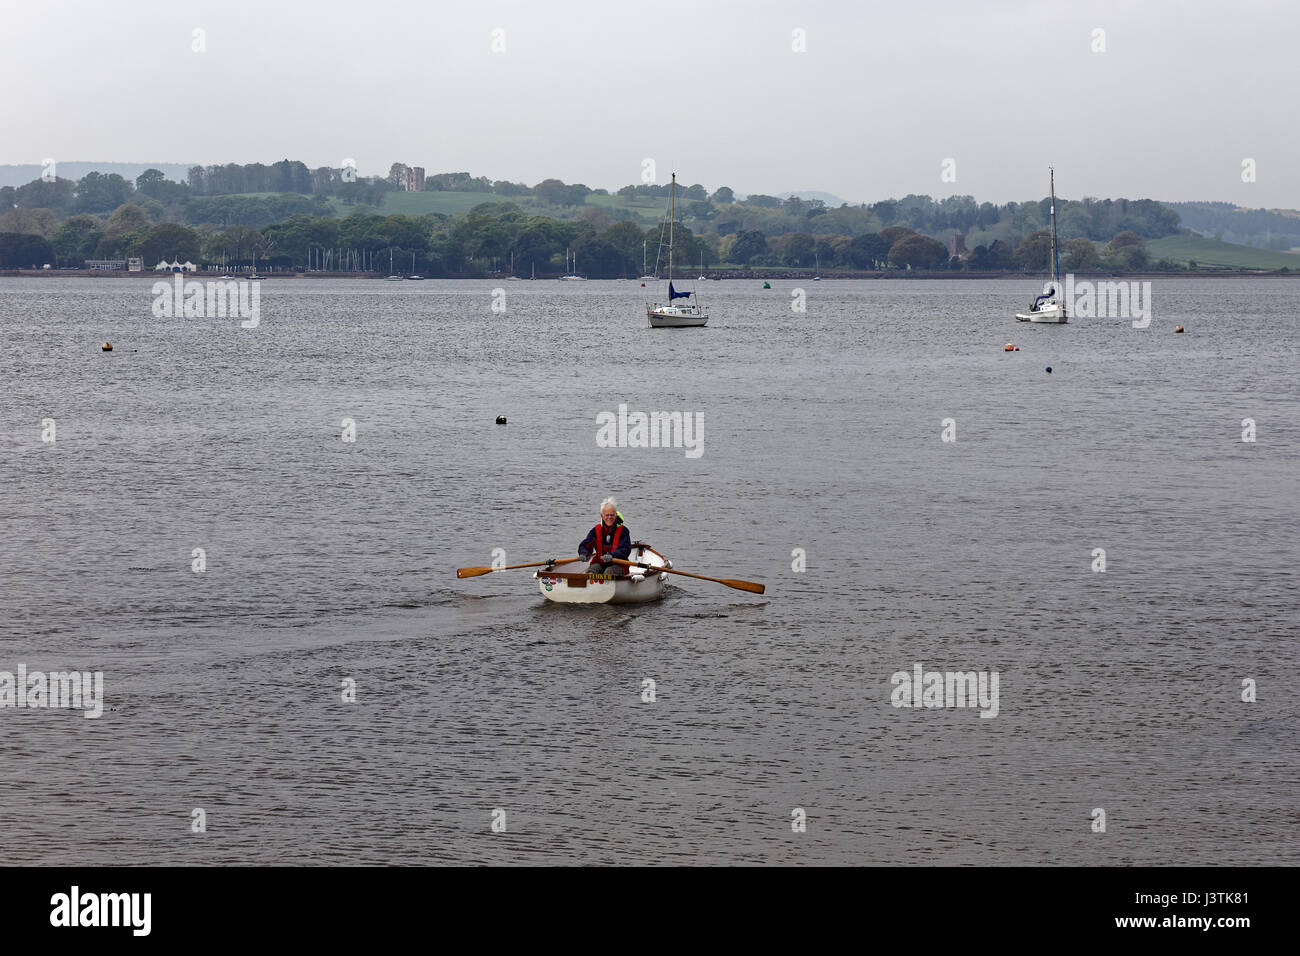 Man rowing boat in the River Exe estuary - Starcross Yacht Club & Powderham in background - Stock Image